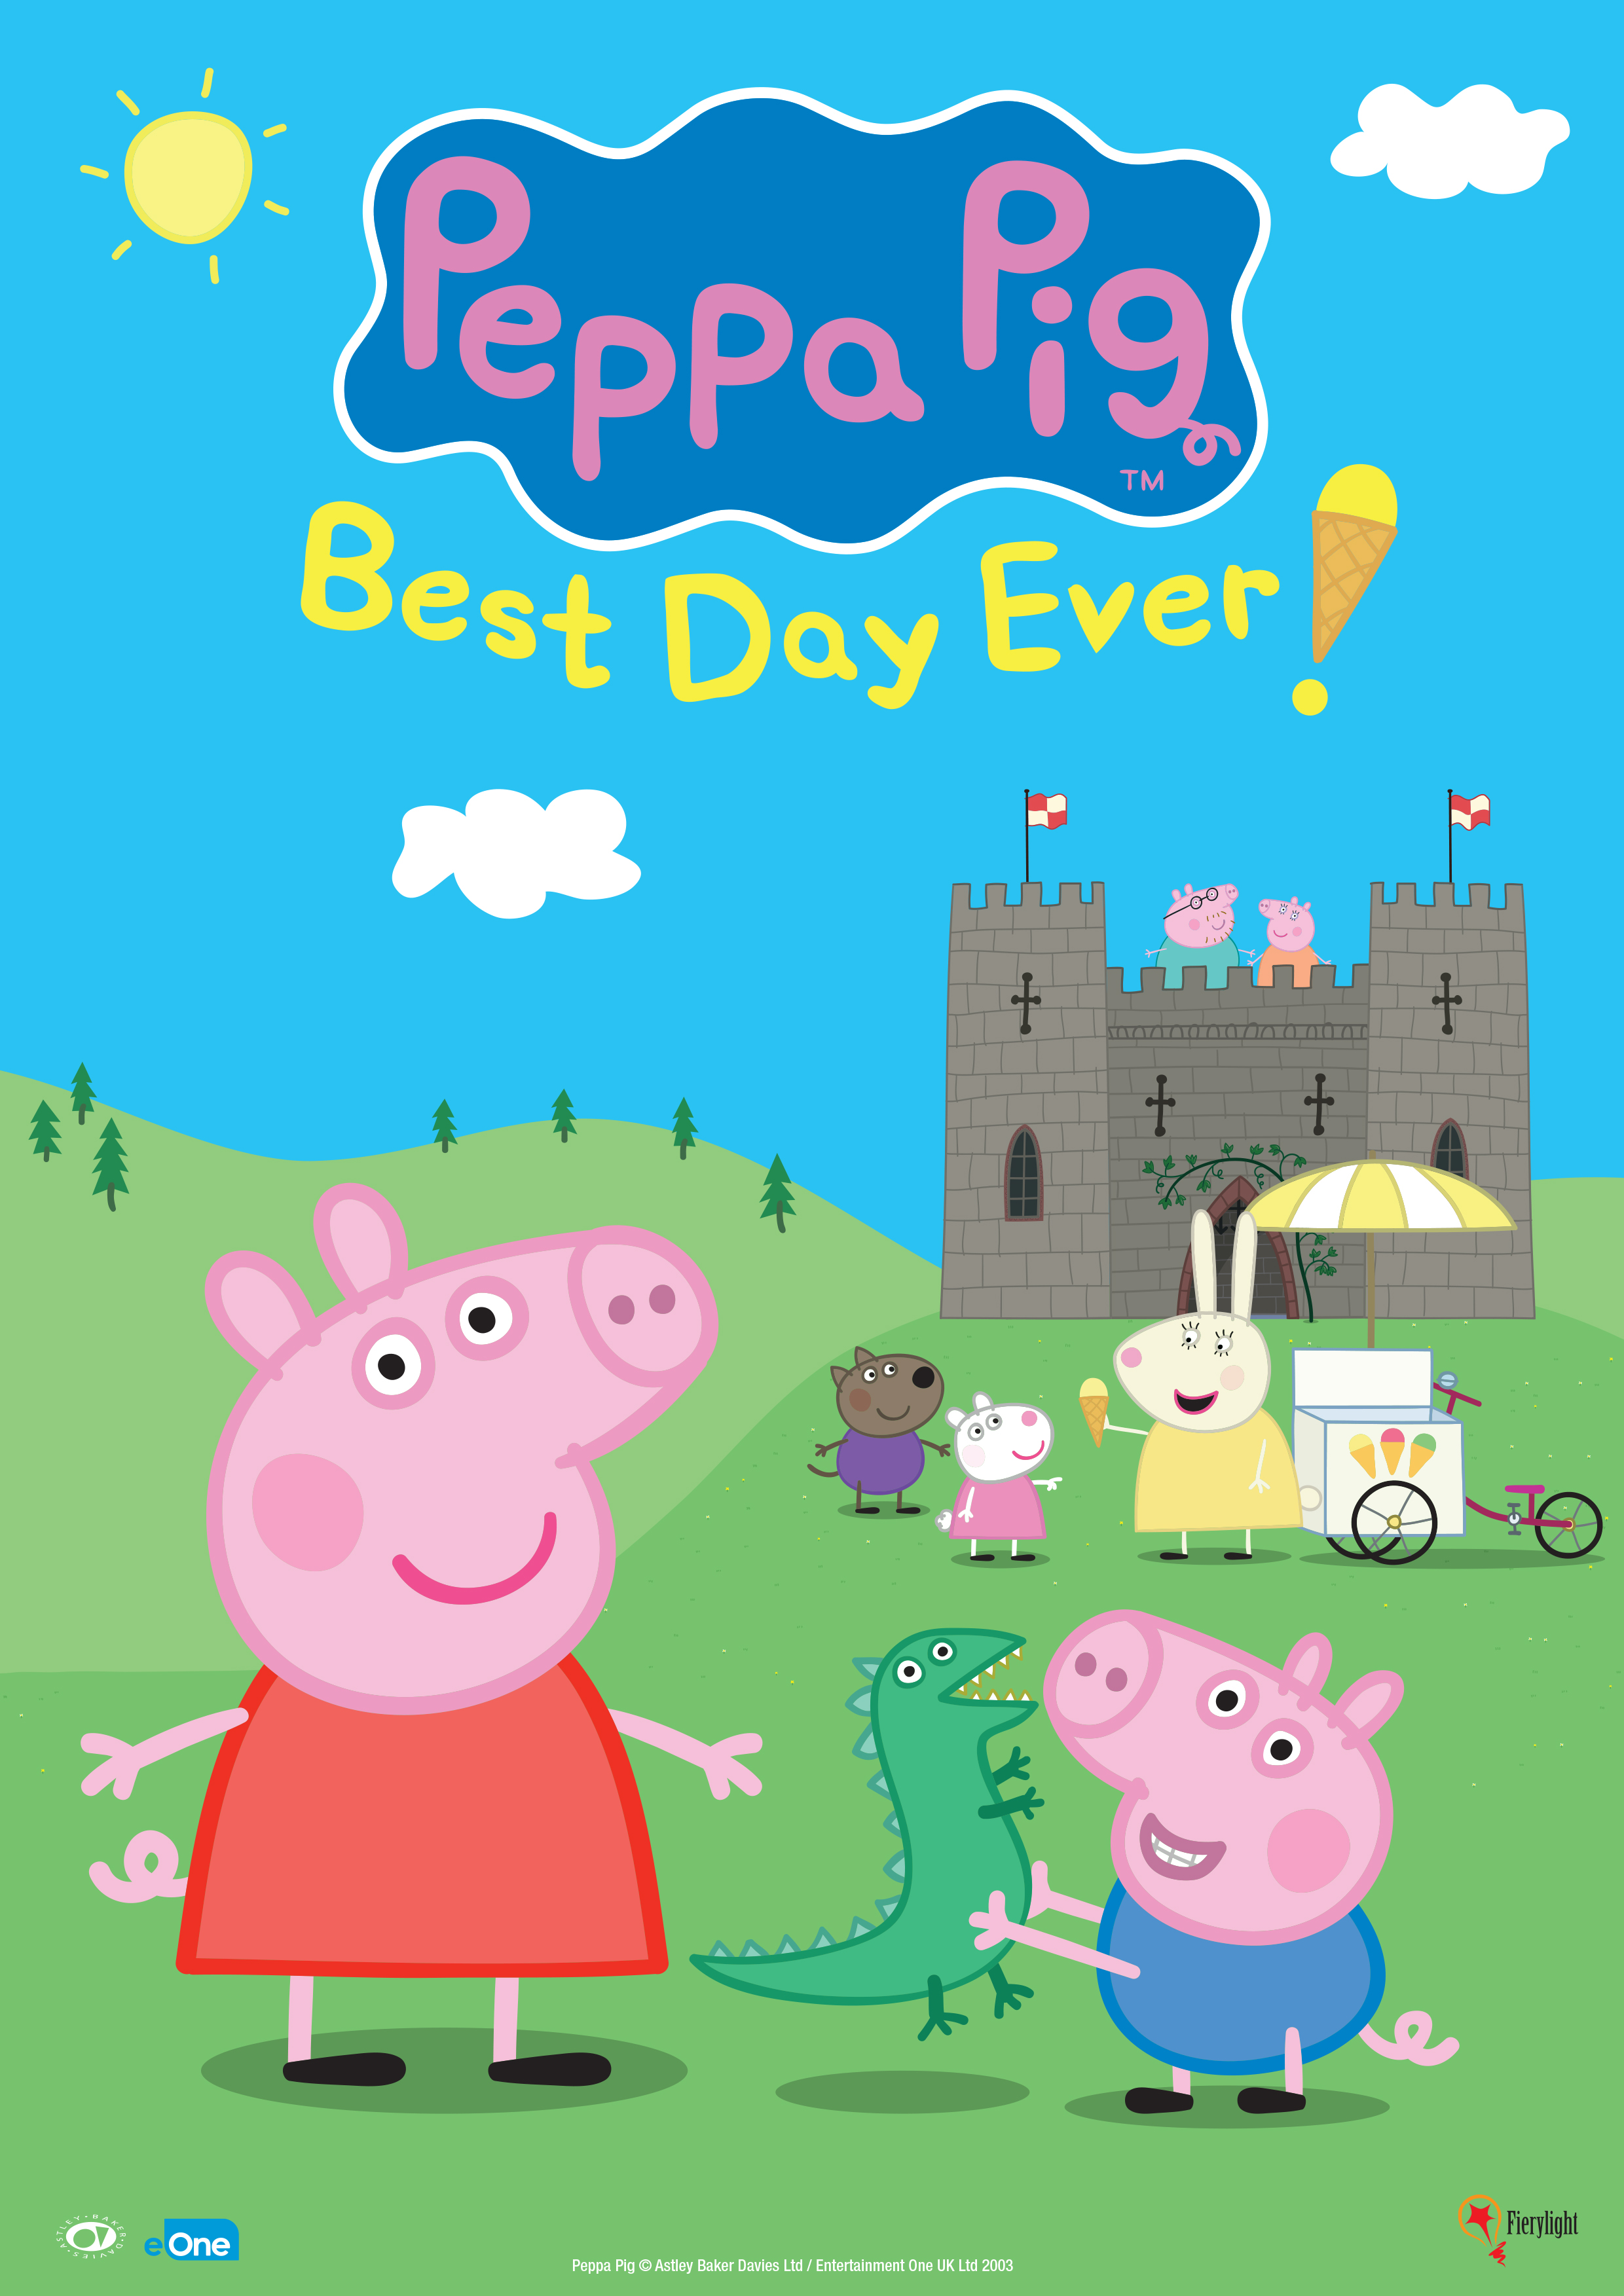 Peppa Pig Best Day Ever Poster Show Image